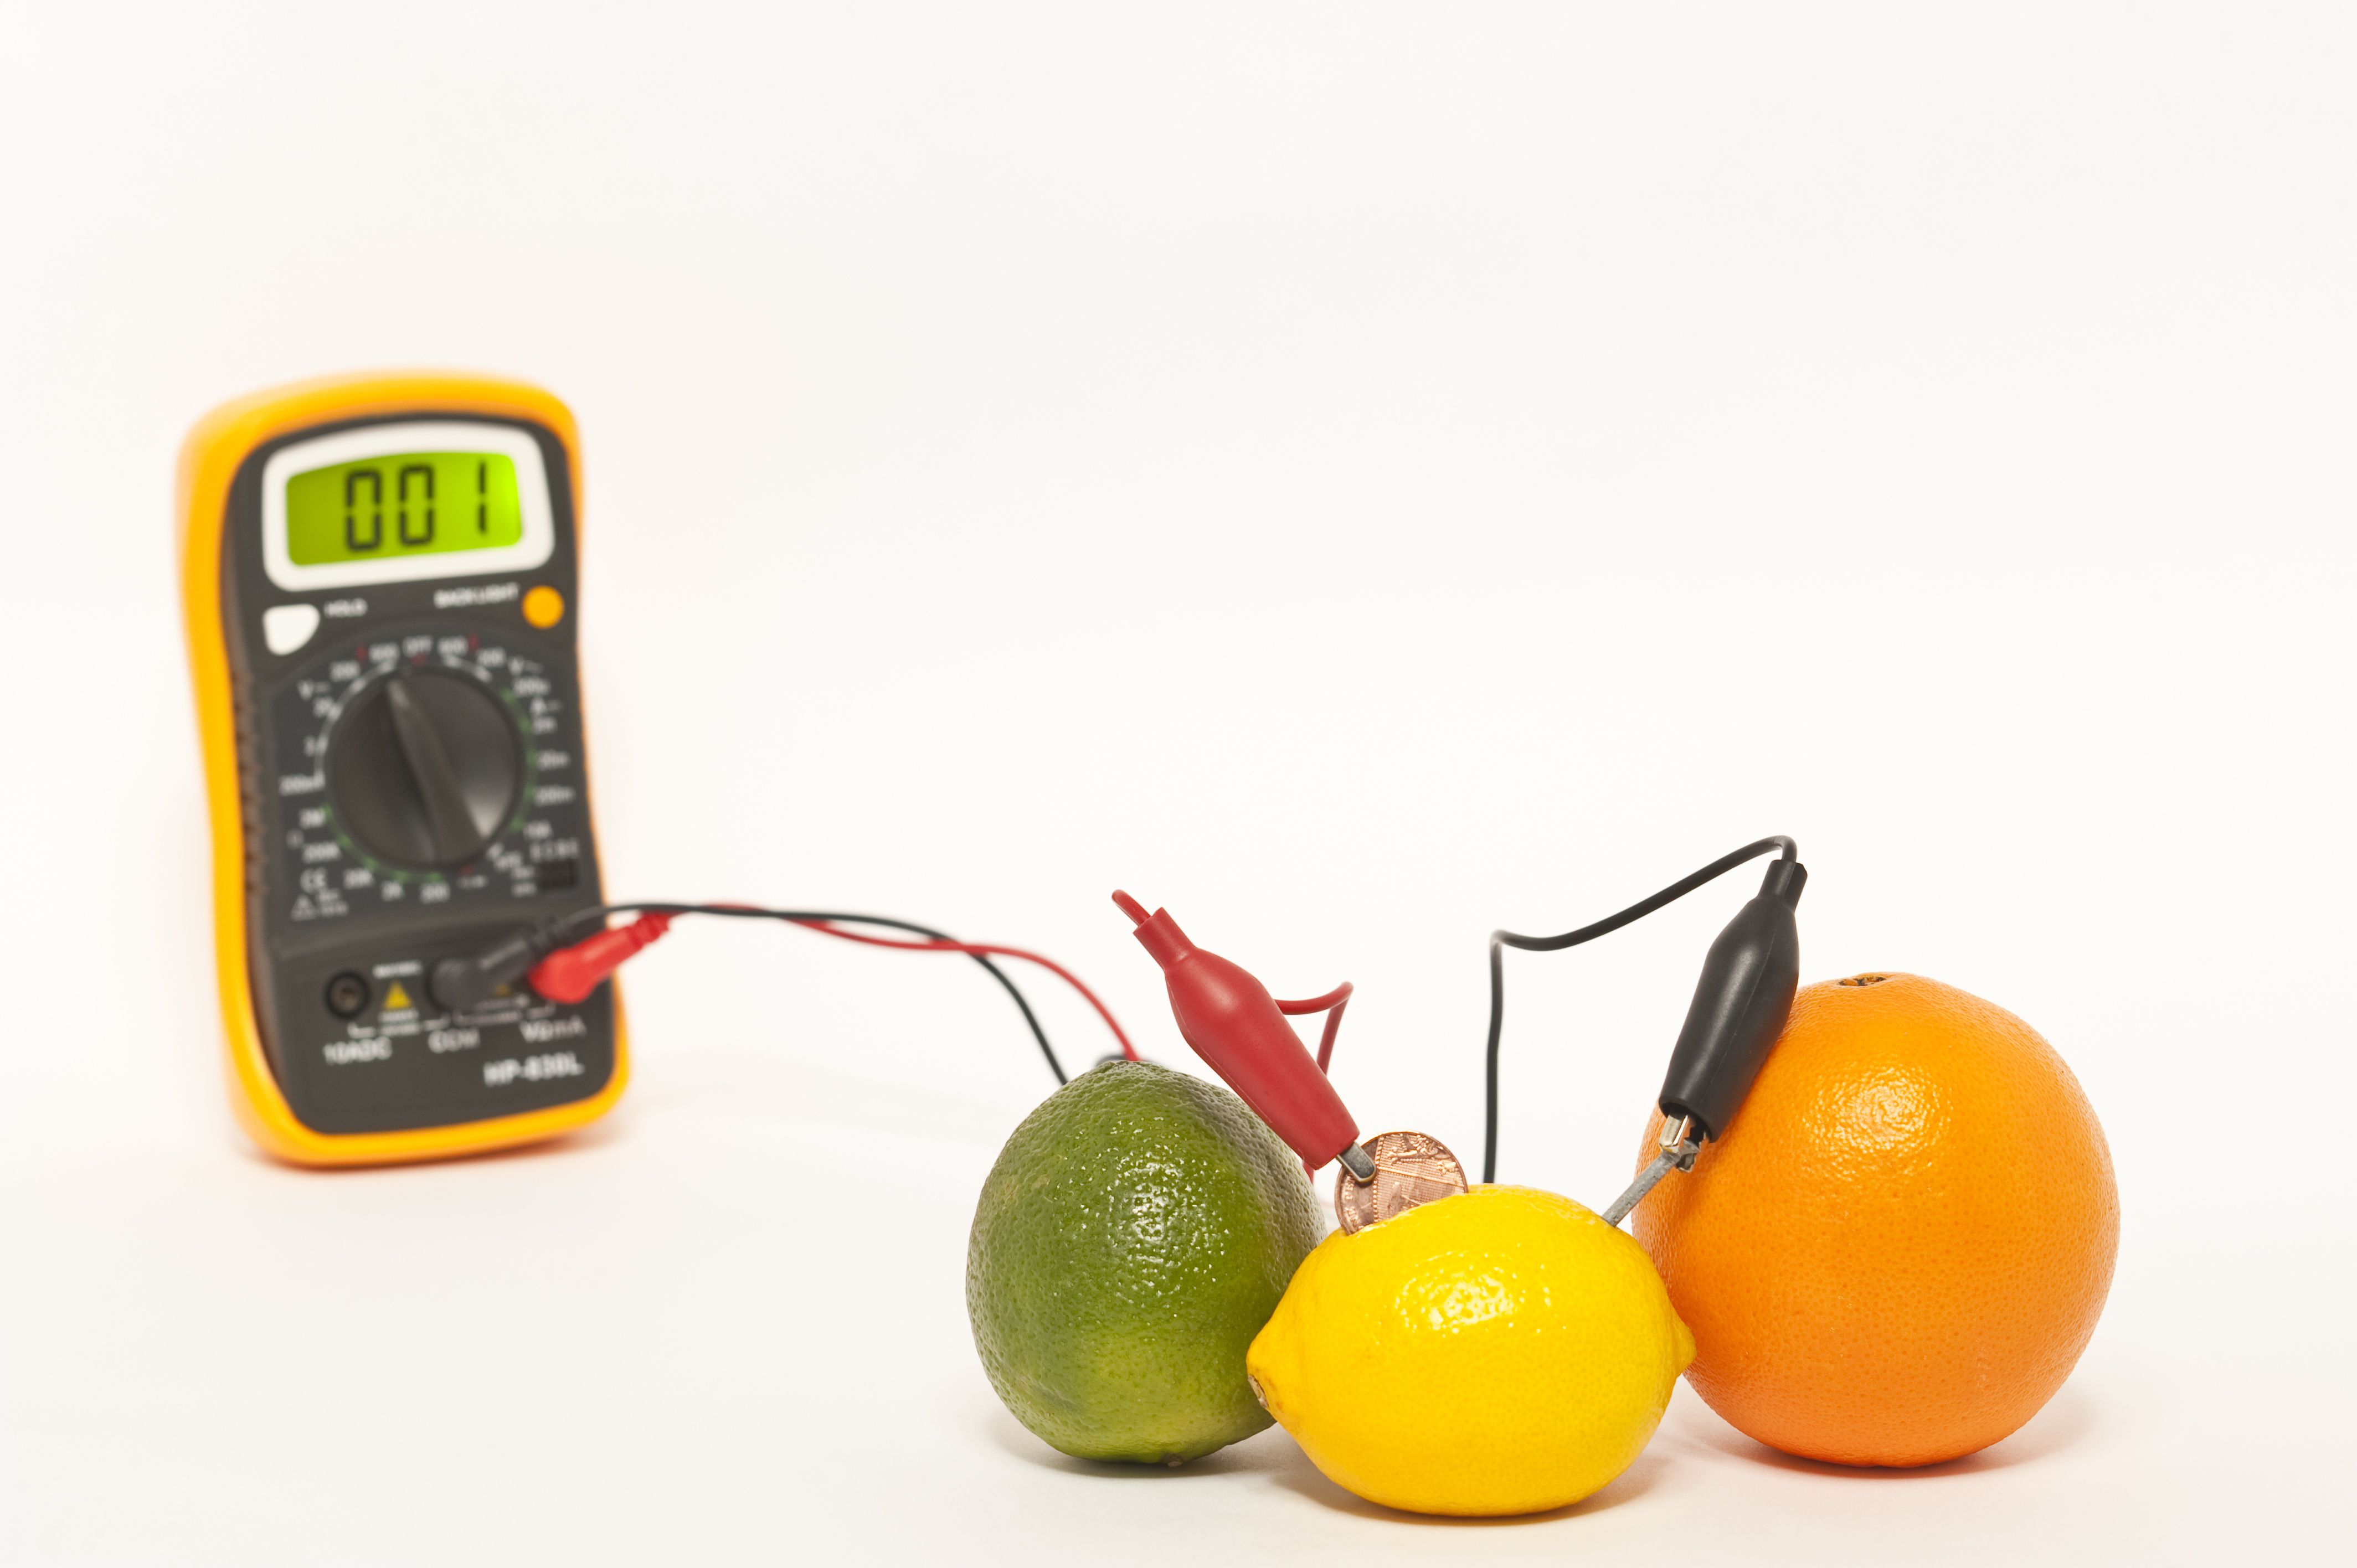 How To Make A Fruit Battery We Can Construct Simple Circuit With And Bulb Produce